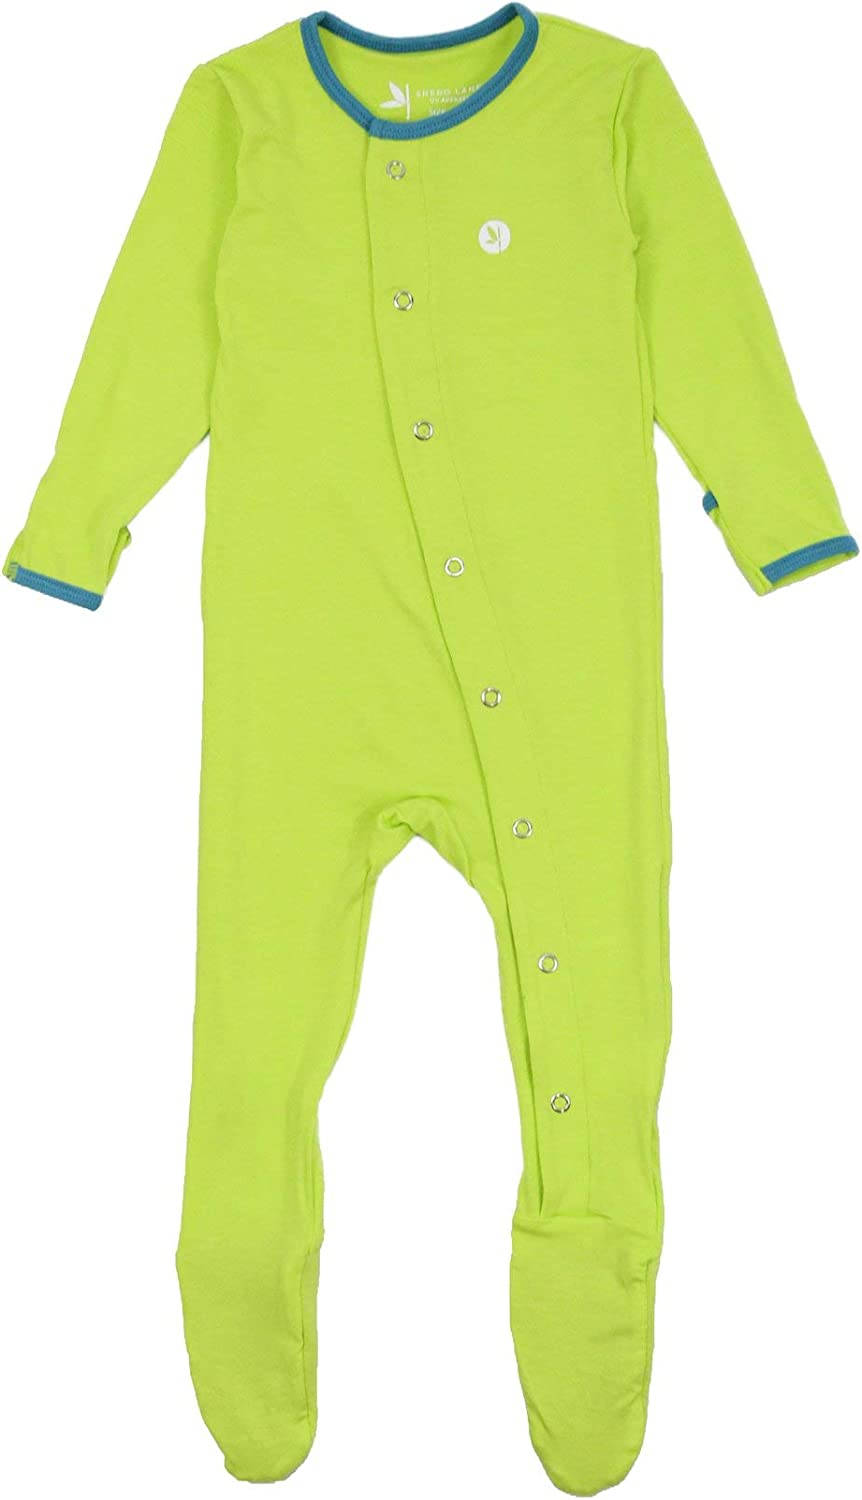 Challenge the lowest price of Japan ☆ Shedo Lane Baby Footed Sleeper - Soft Ranking TOP17 Sleep Super Pajamas Play